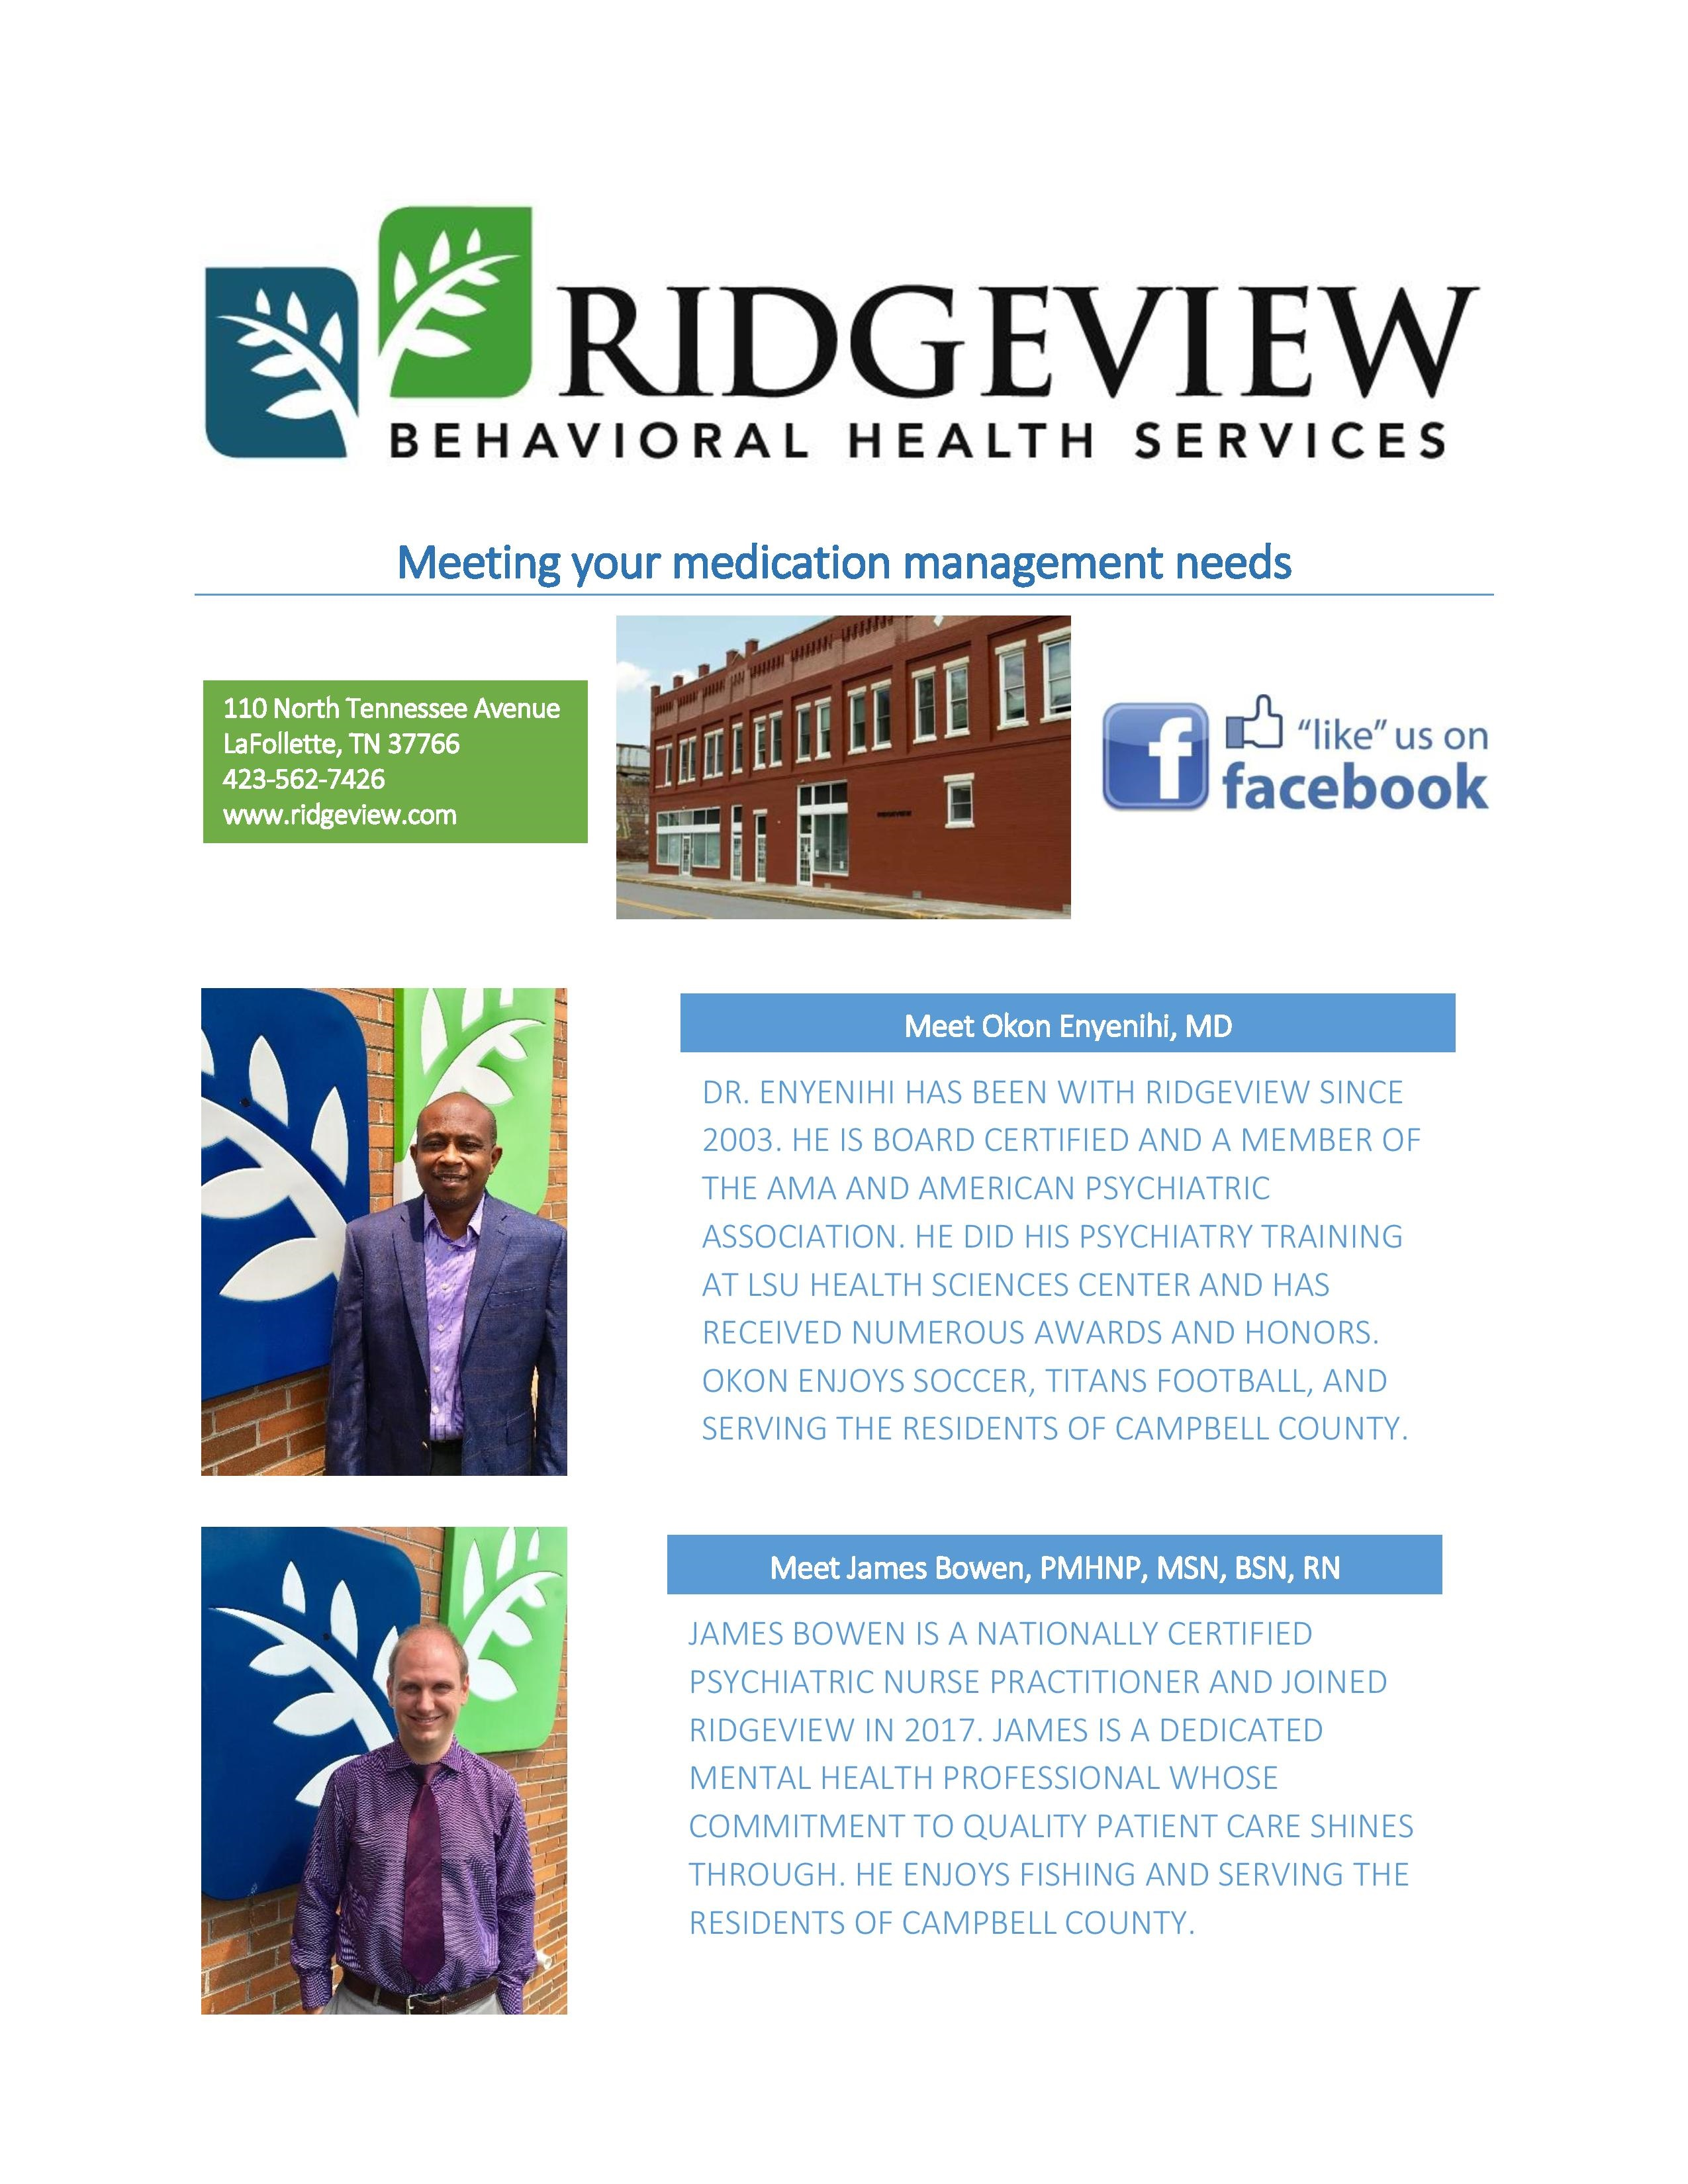 Campbell Outpatient Center - Ridgeview Behavioral Health